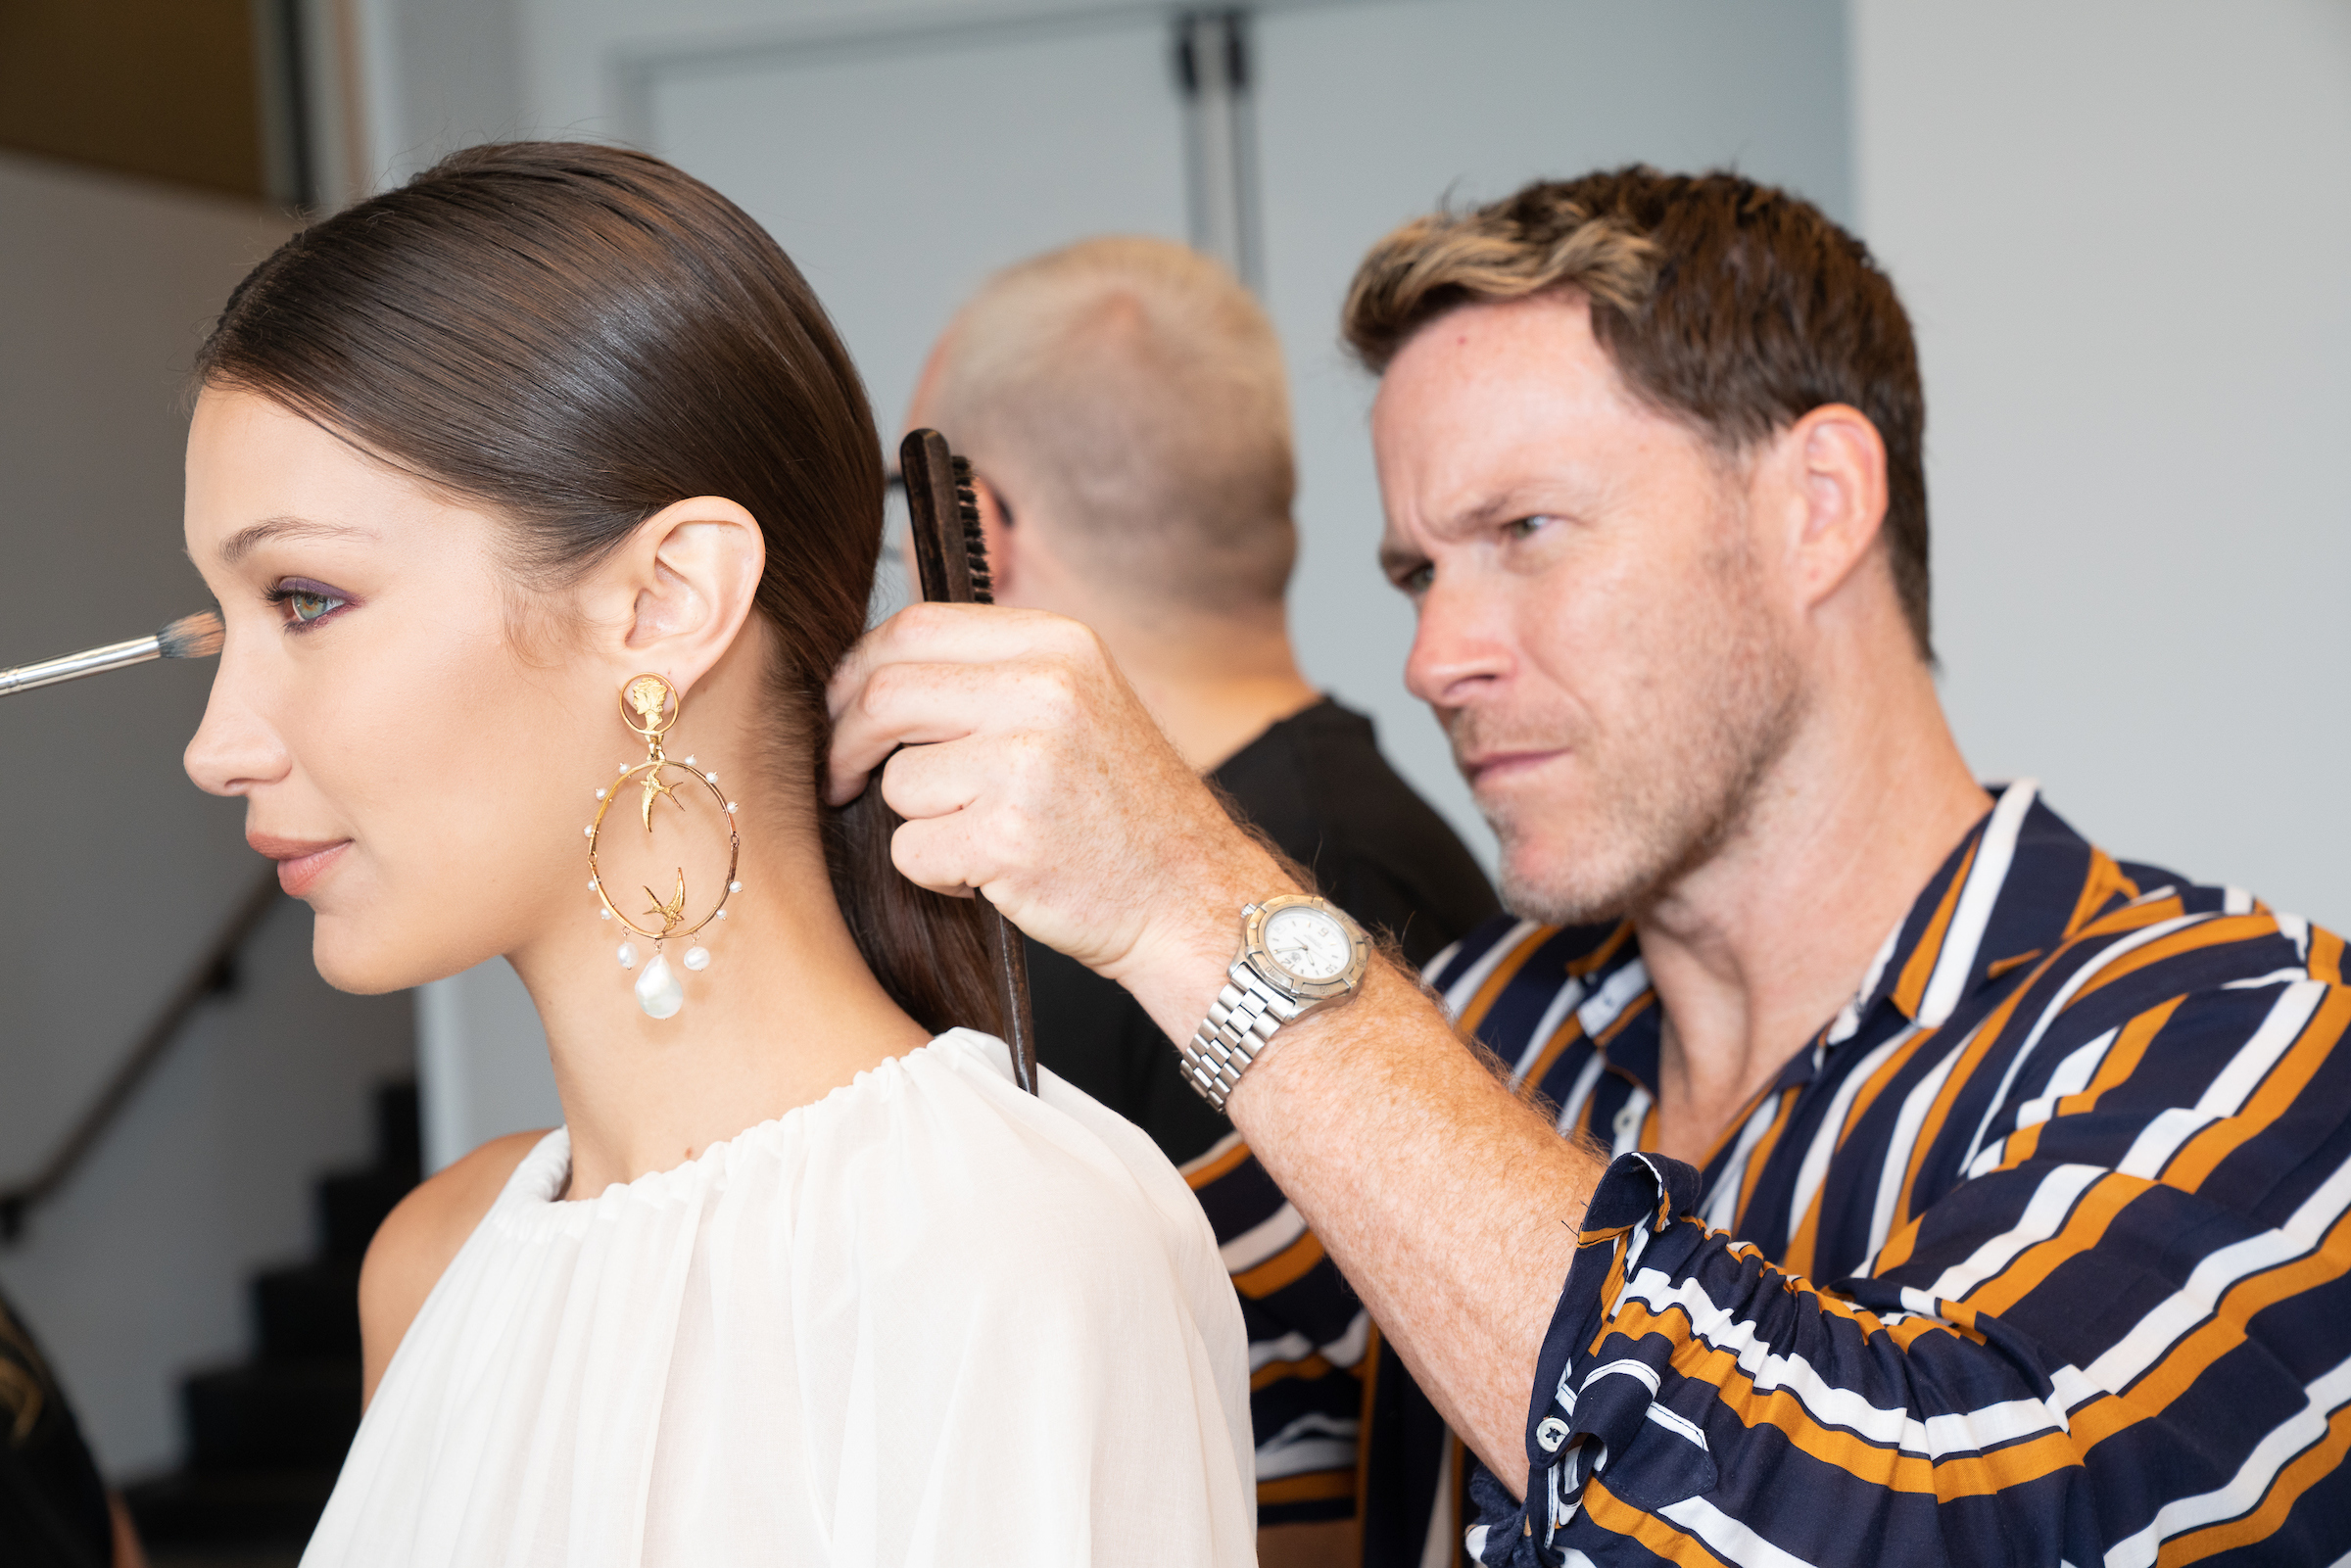 Moroccanoil's Kevin Hughes with Bella Hadid.